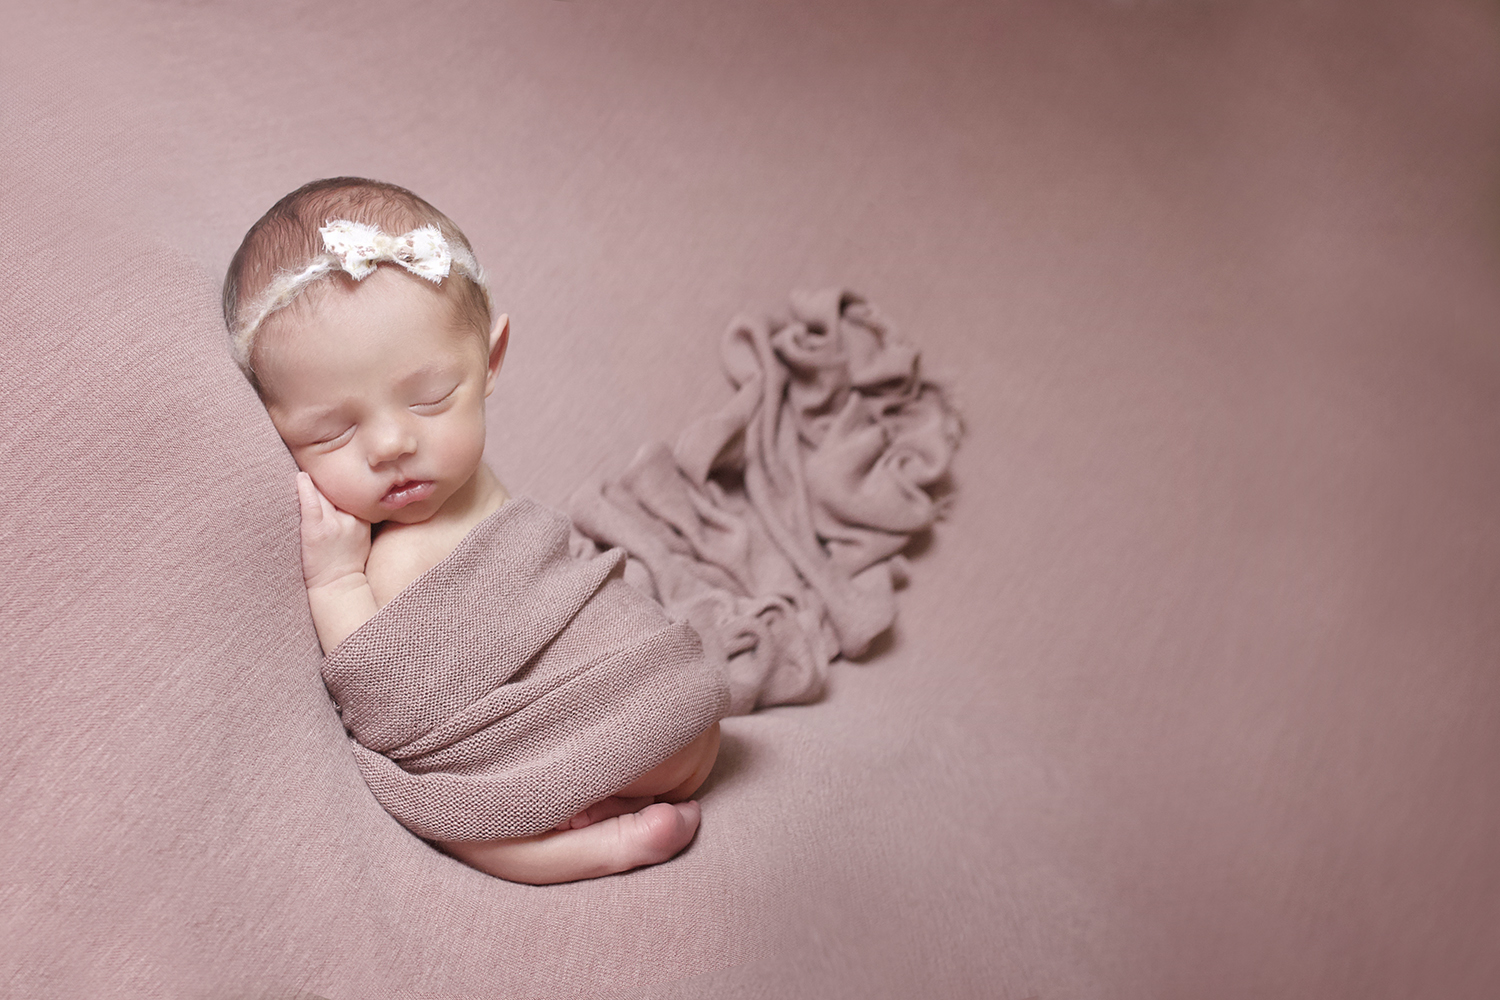 Newborn baby girl sleeping on pink blanket with pink wrap and tieback